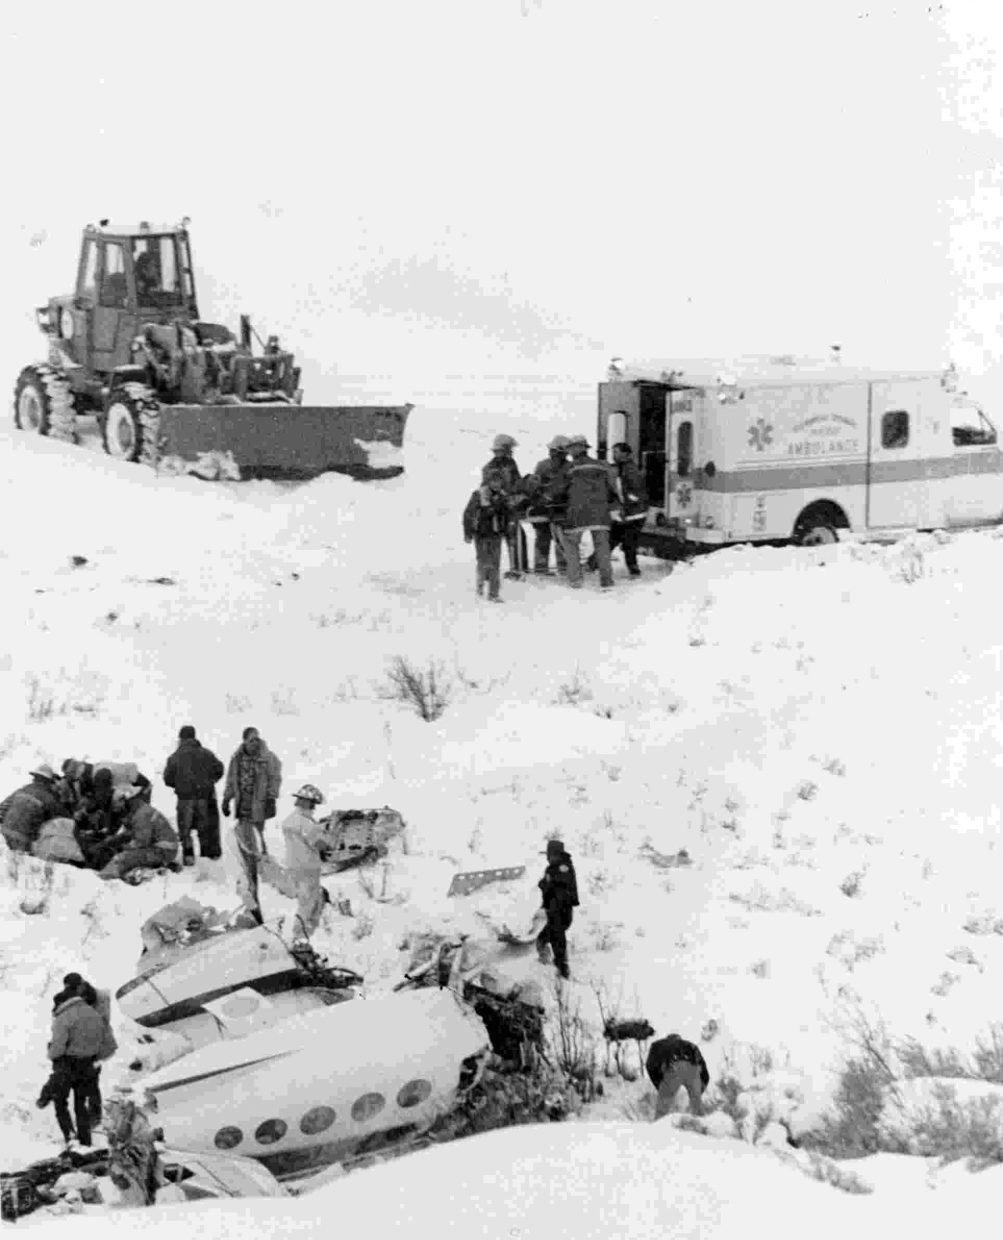 Jan. 1992 — I was watching a Broncos football game Jan. 4, 1992, when I heard the page that an airplane had run off the end of the runway at Bob Adams Field in Steamboat Springs. I jumped in my car and raced to the scene, arriving just minutes before law enforcement officers closed the scene, and so I was able to get these photos. The airplane crash was one of the worst I've ever seen at the small Steamboat Springs airport. The plane, which was later found to be overloaded, had crashed in a ravine just off the runway, killing three and injuring six.